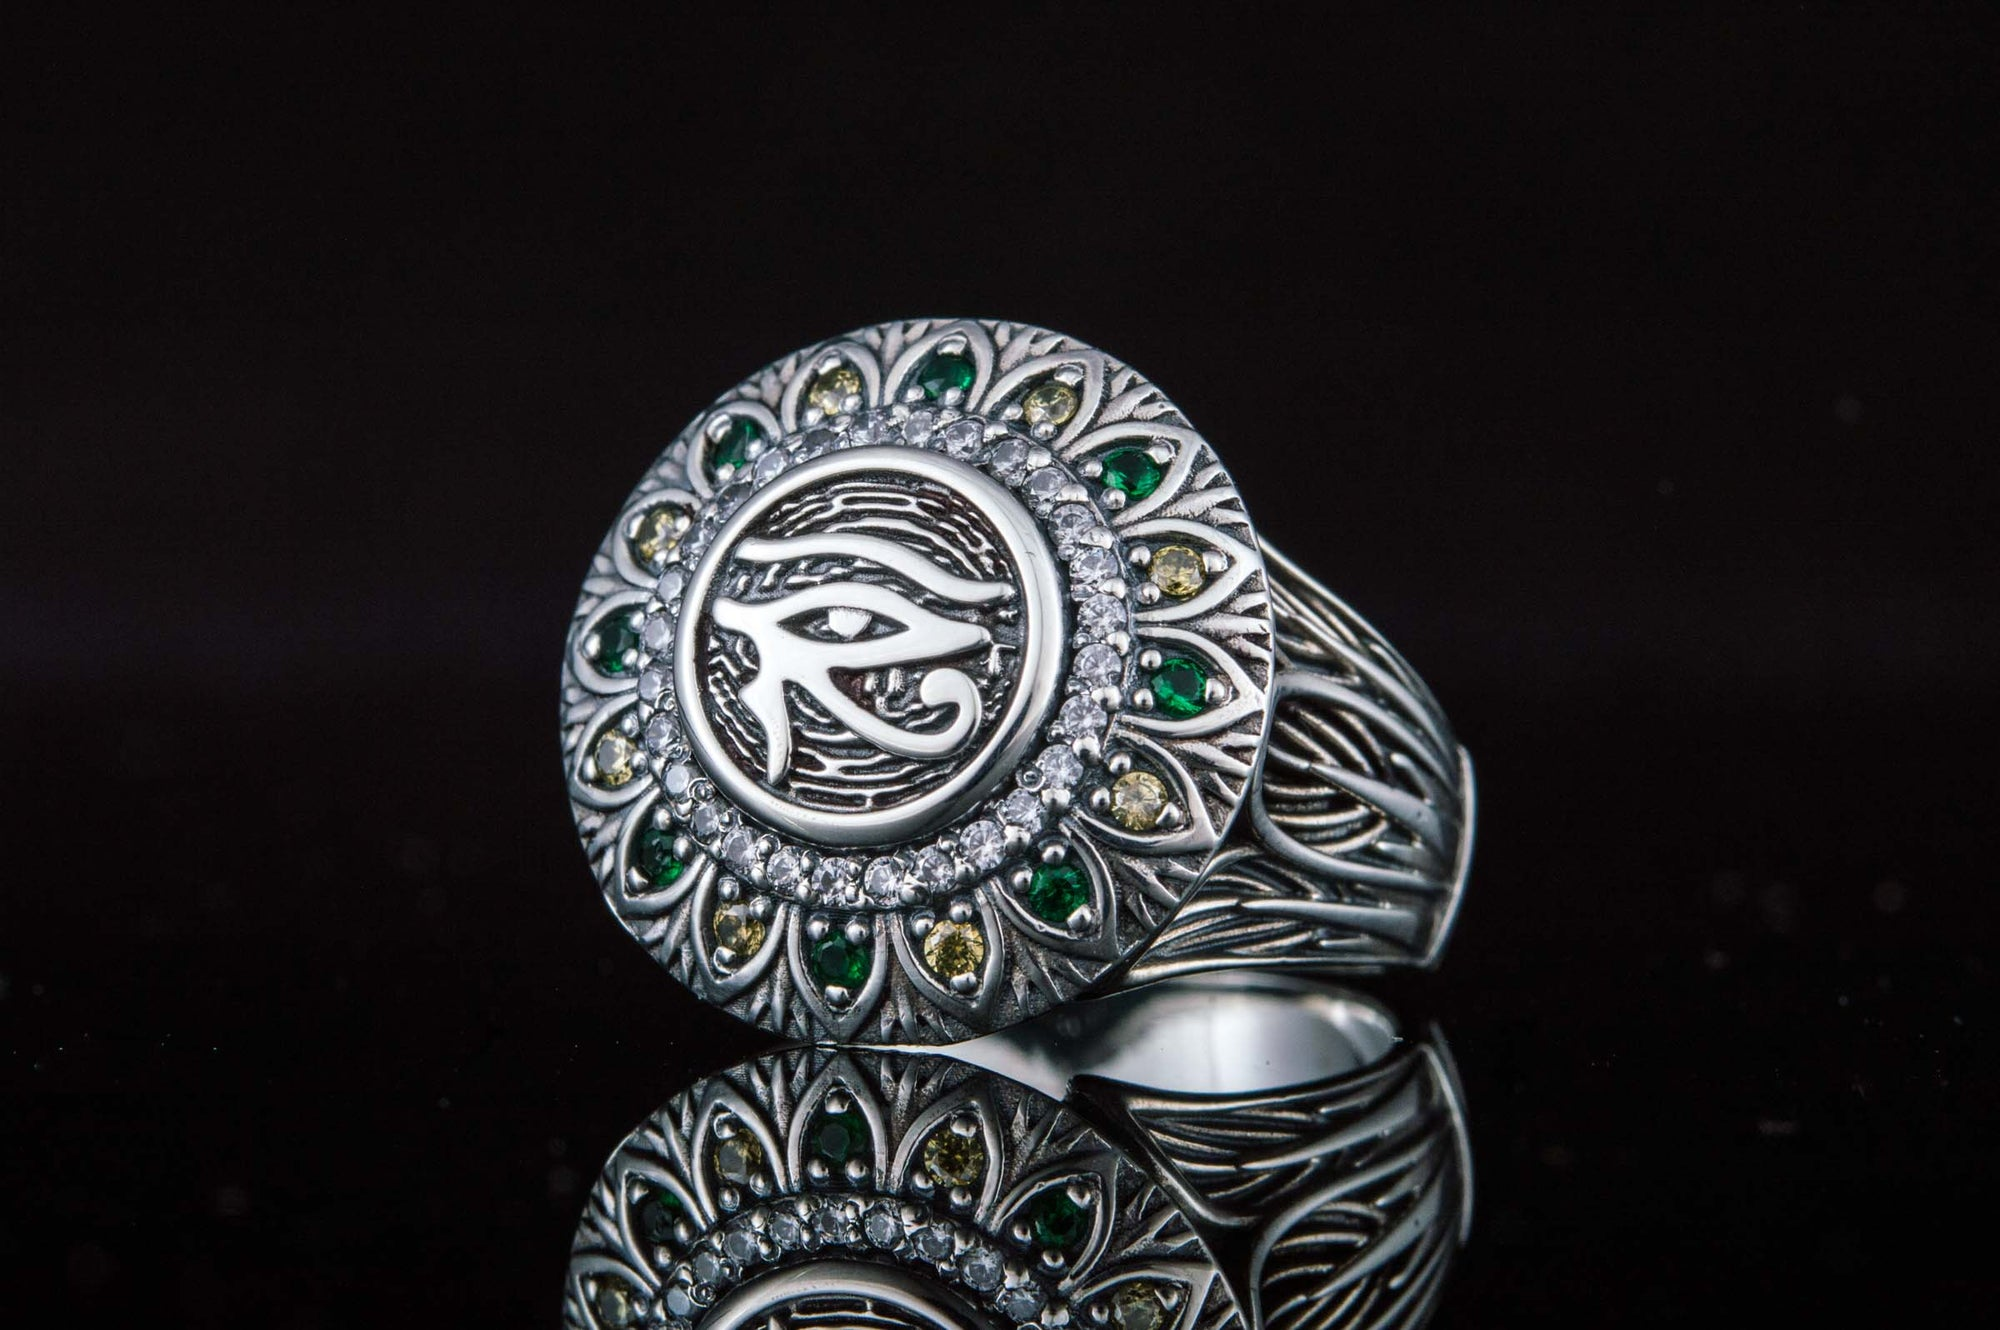 Rings Ancient Egypt Eye of Horus Sterling Silver Ring with Cubic Zirconia Ancient Treasures Ancientreasures Viking Odin Thor Mjolnir Celtic Ancient Egypt Norse Norse Mythology